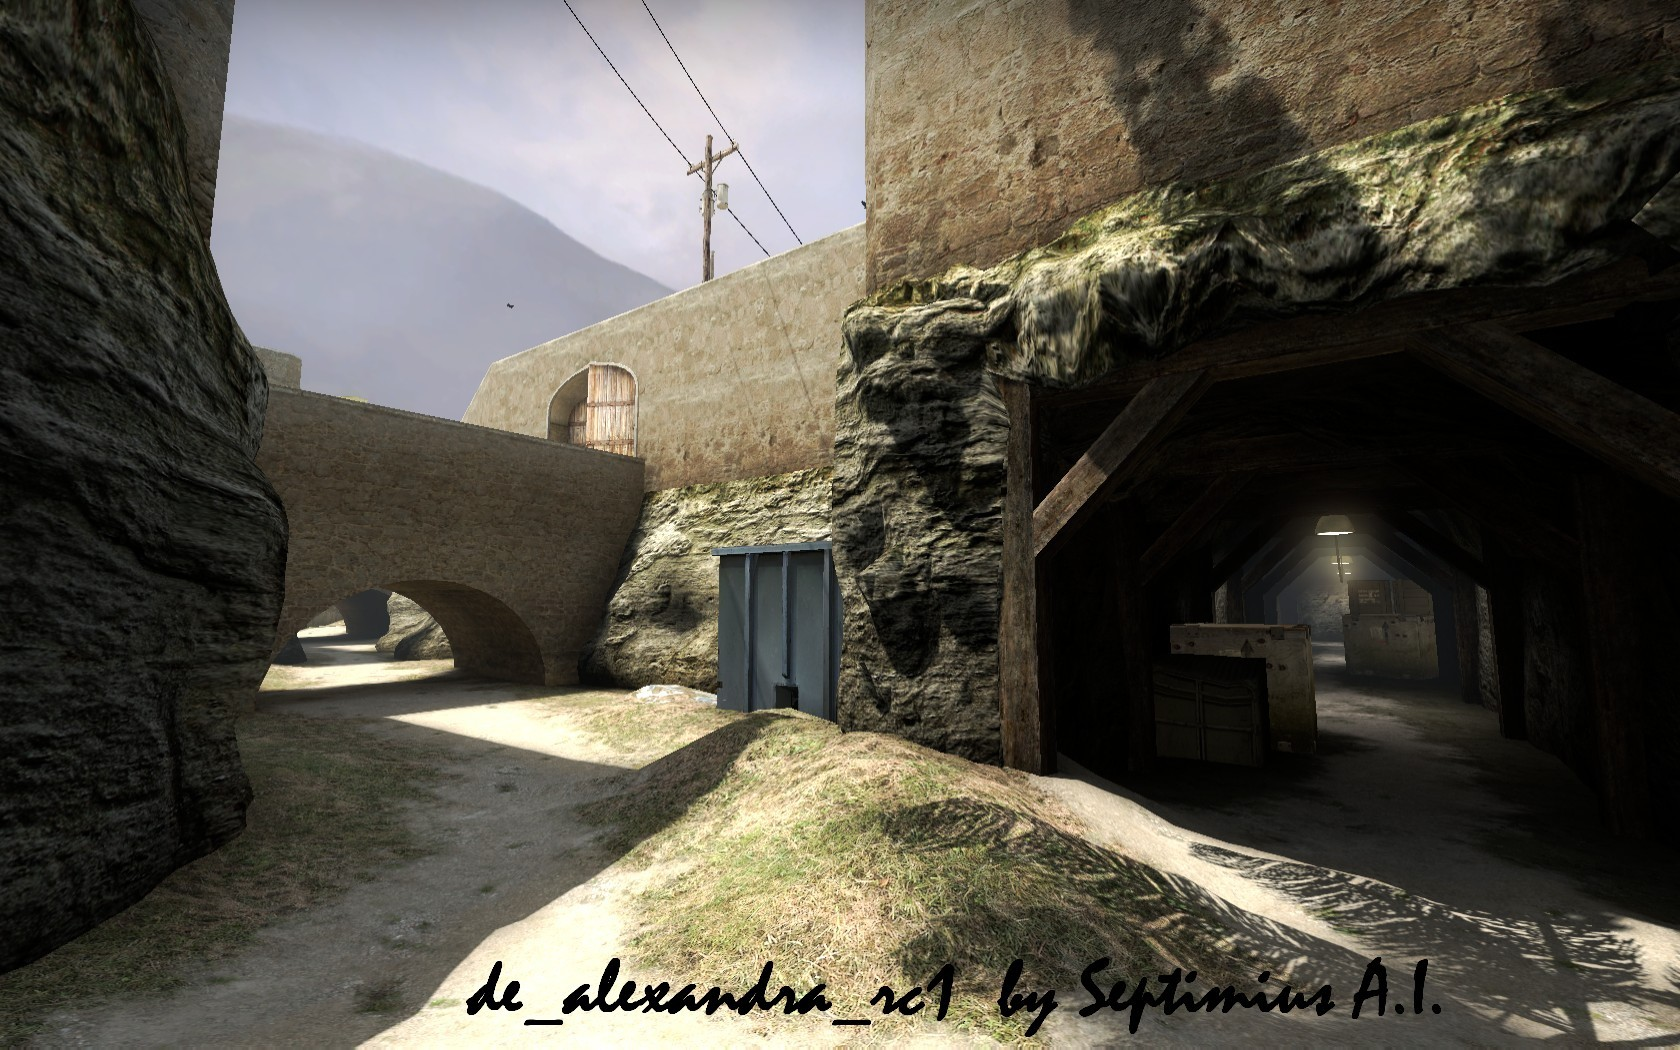 counter-strike.biz-maps-de alexandra rc1-scr-03